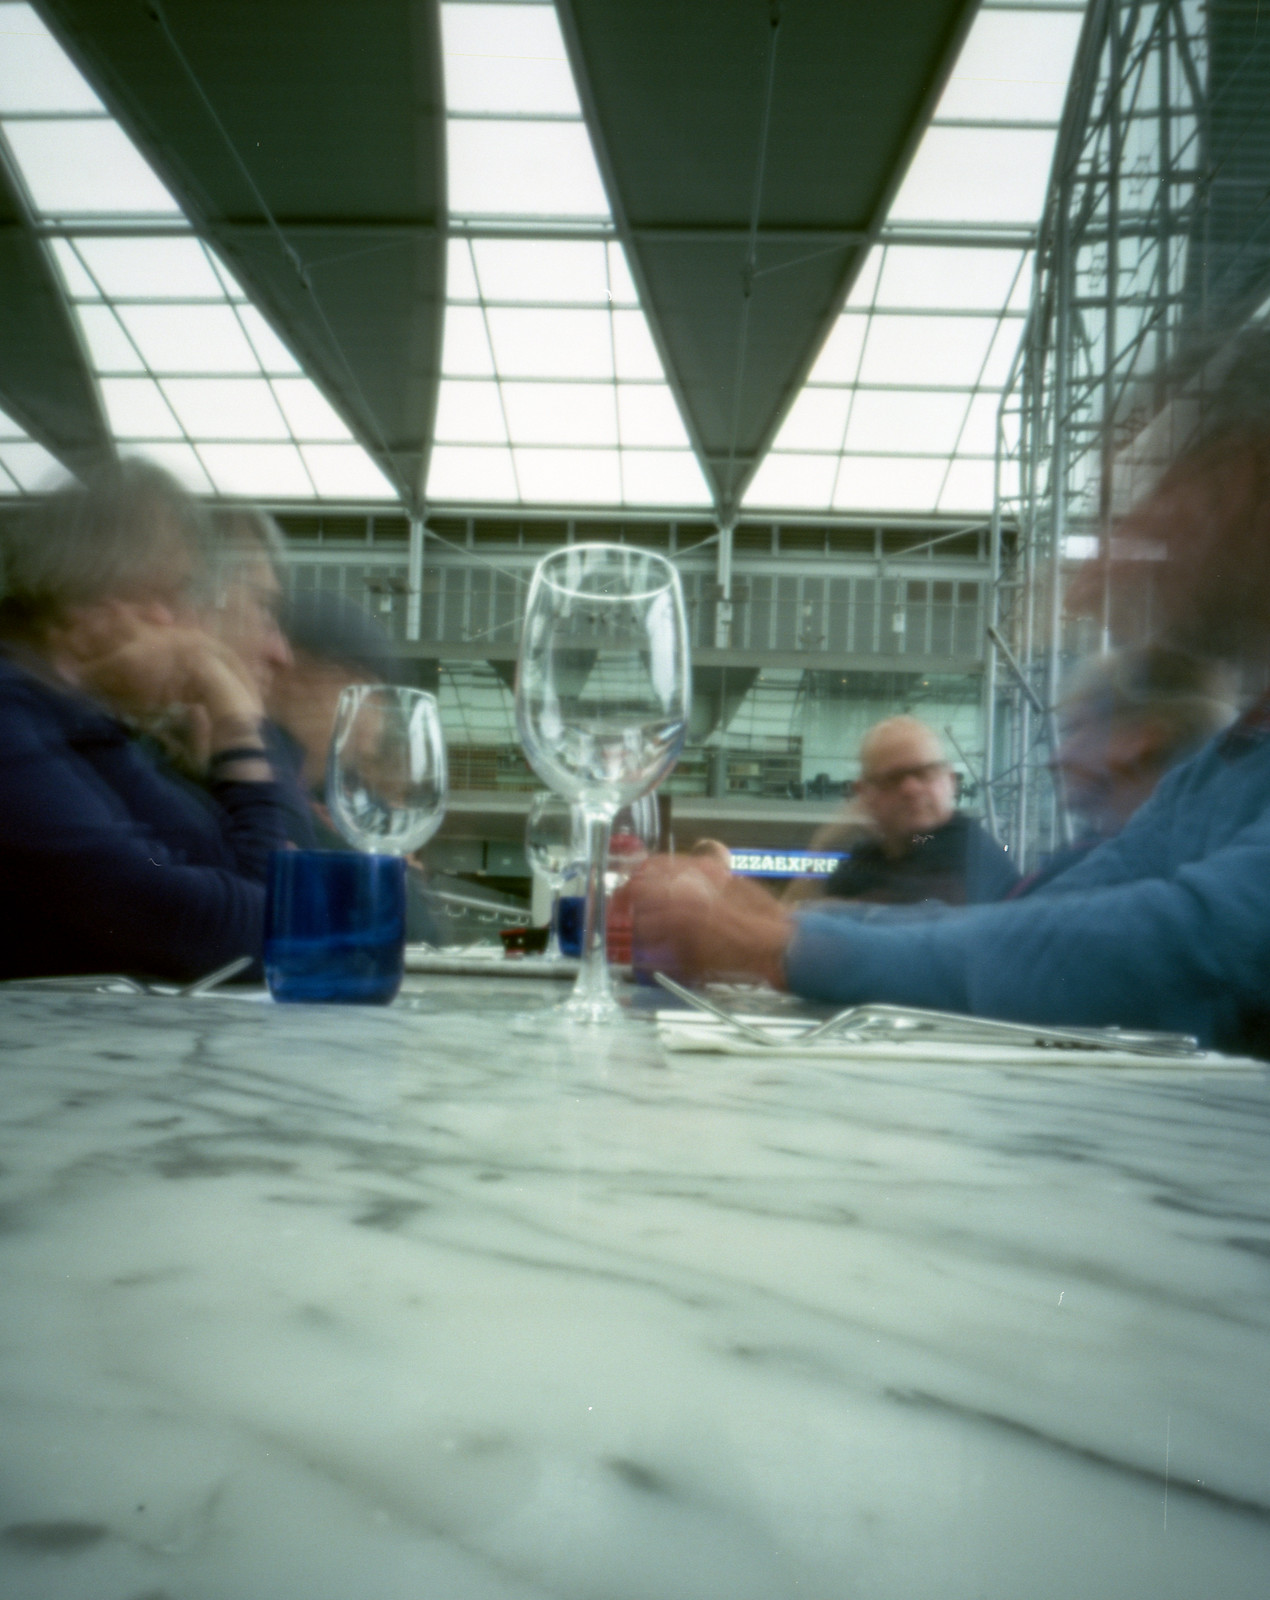 Pinholeday (4 of 4)